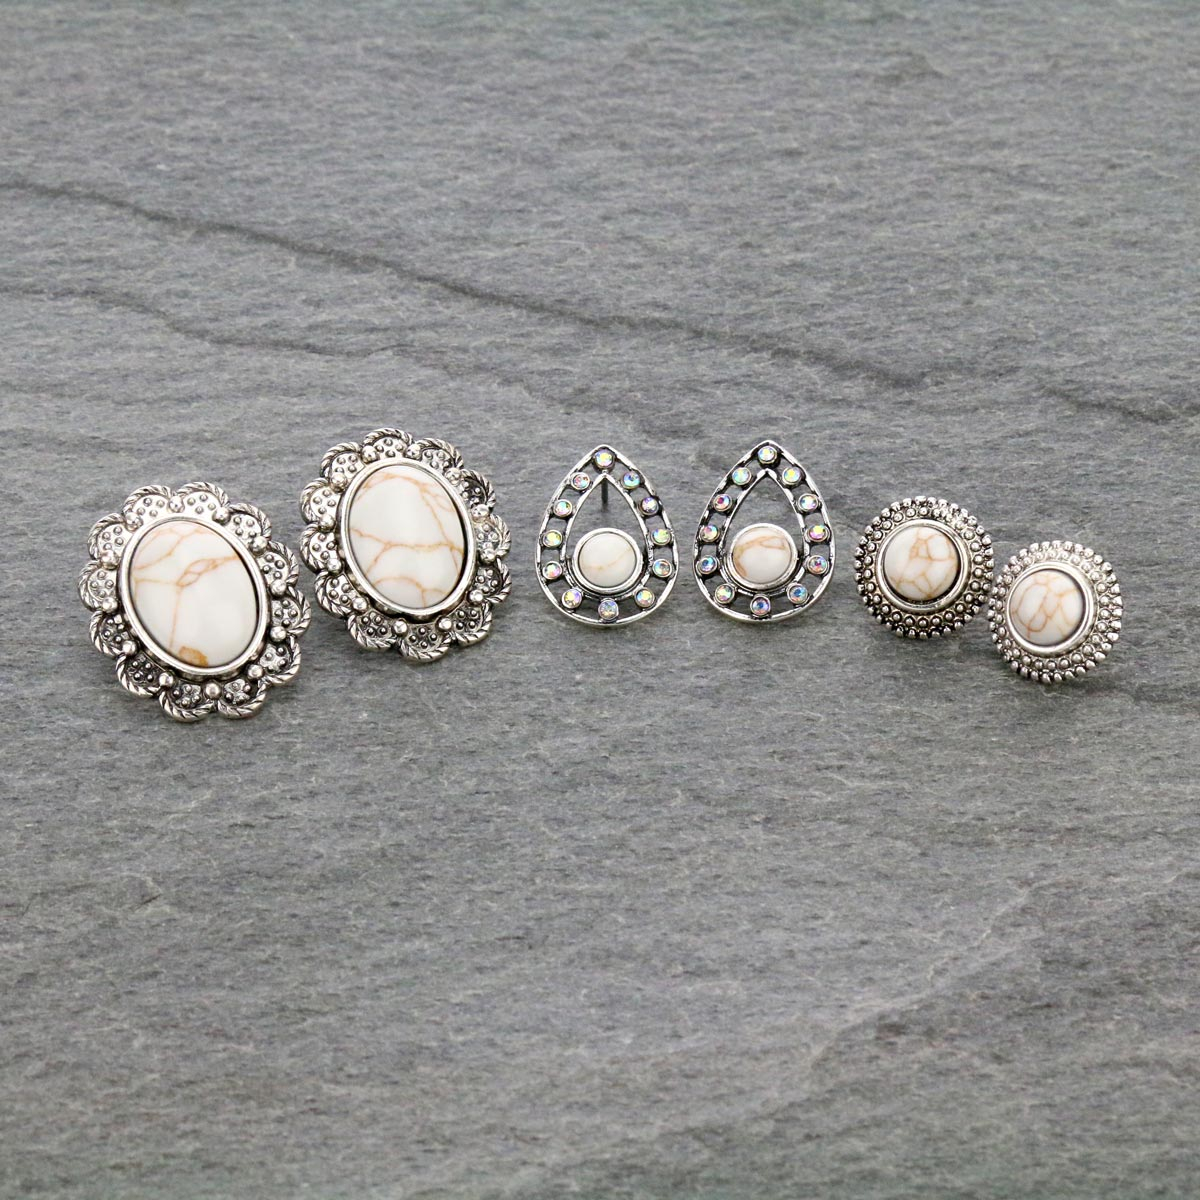 3 Pair Stone Stud Earrings Set-ER1118/NAT